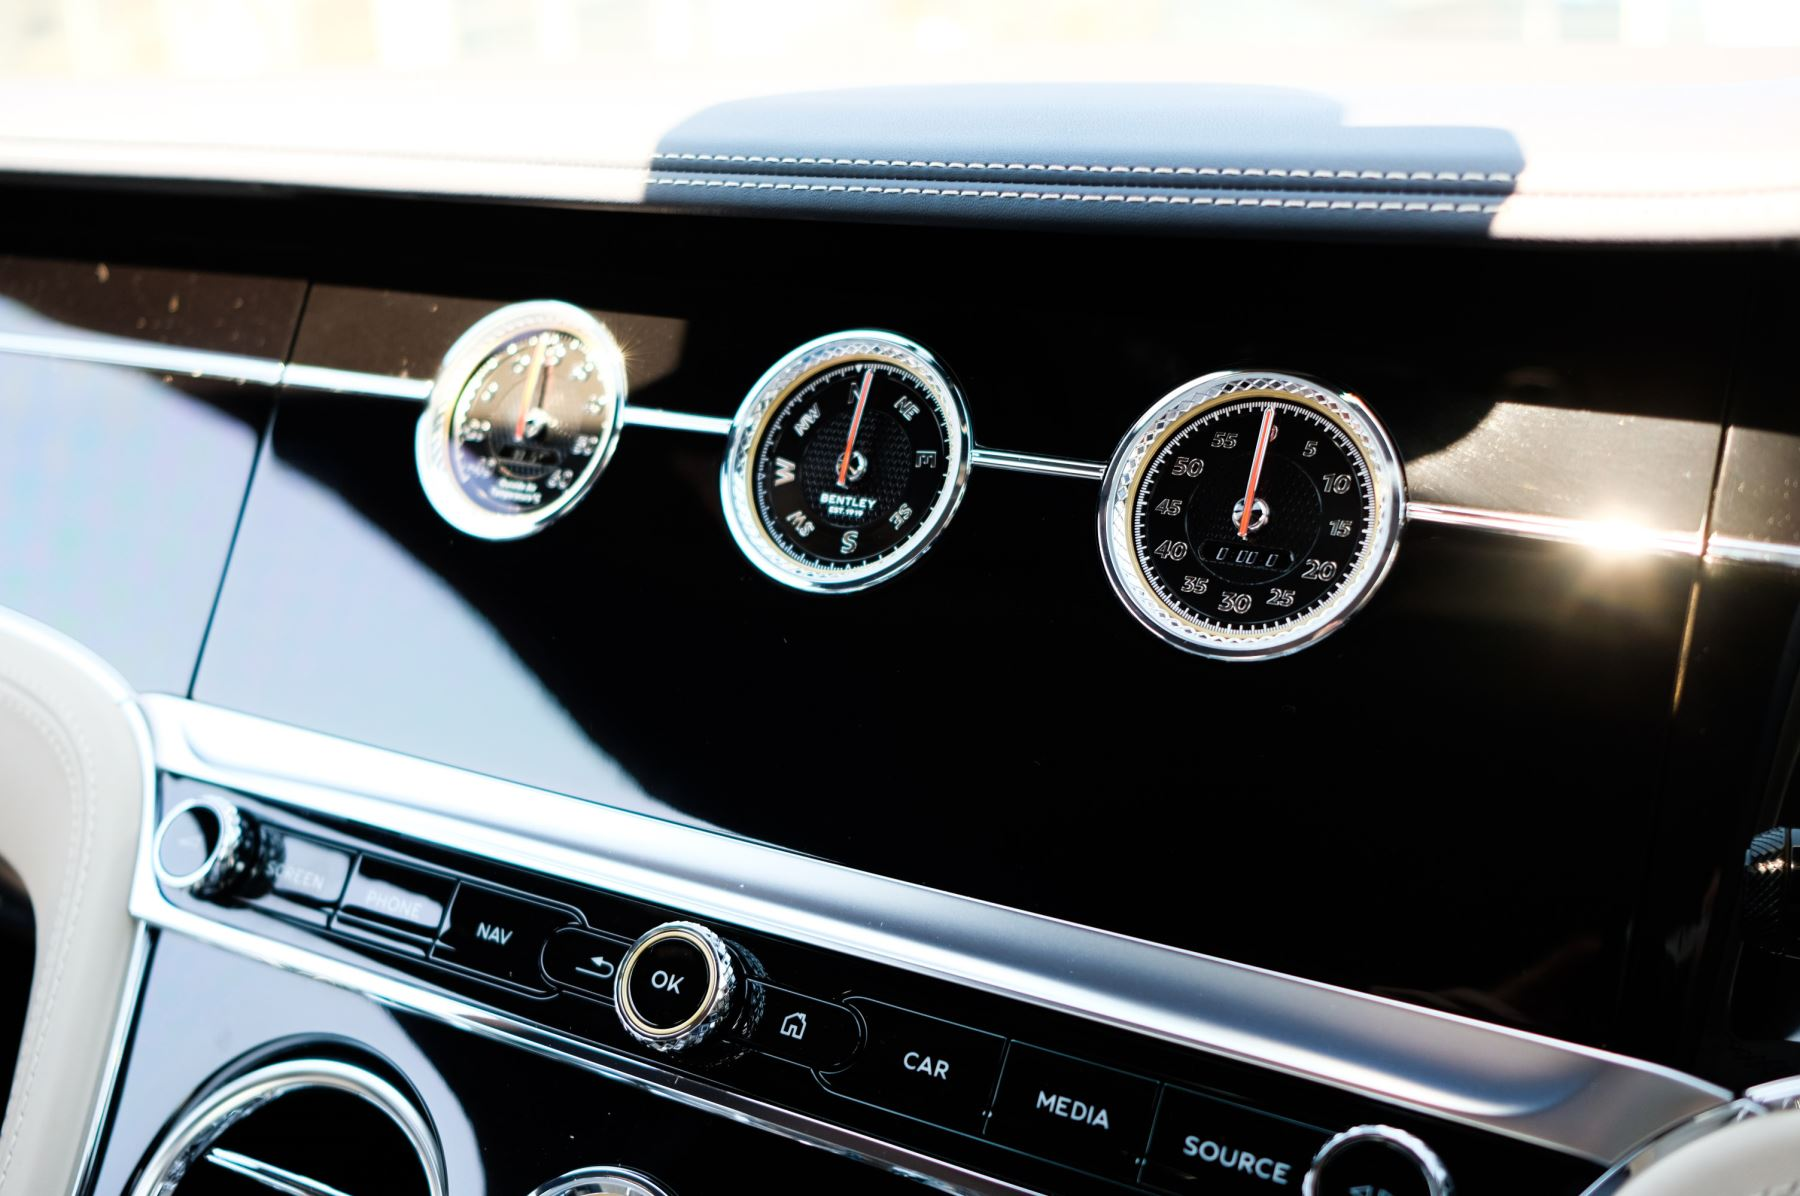 Bentley Continental GT 6.0 W12 - CITY + TOURING SPECIFICATION image 20